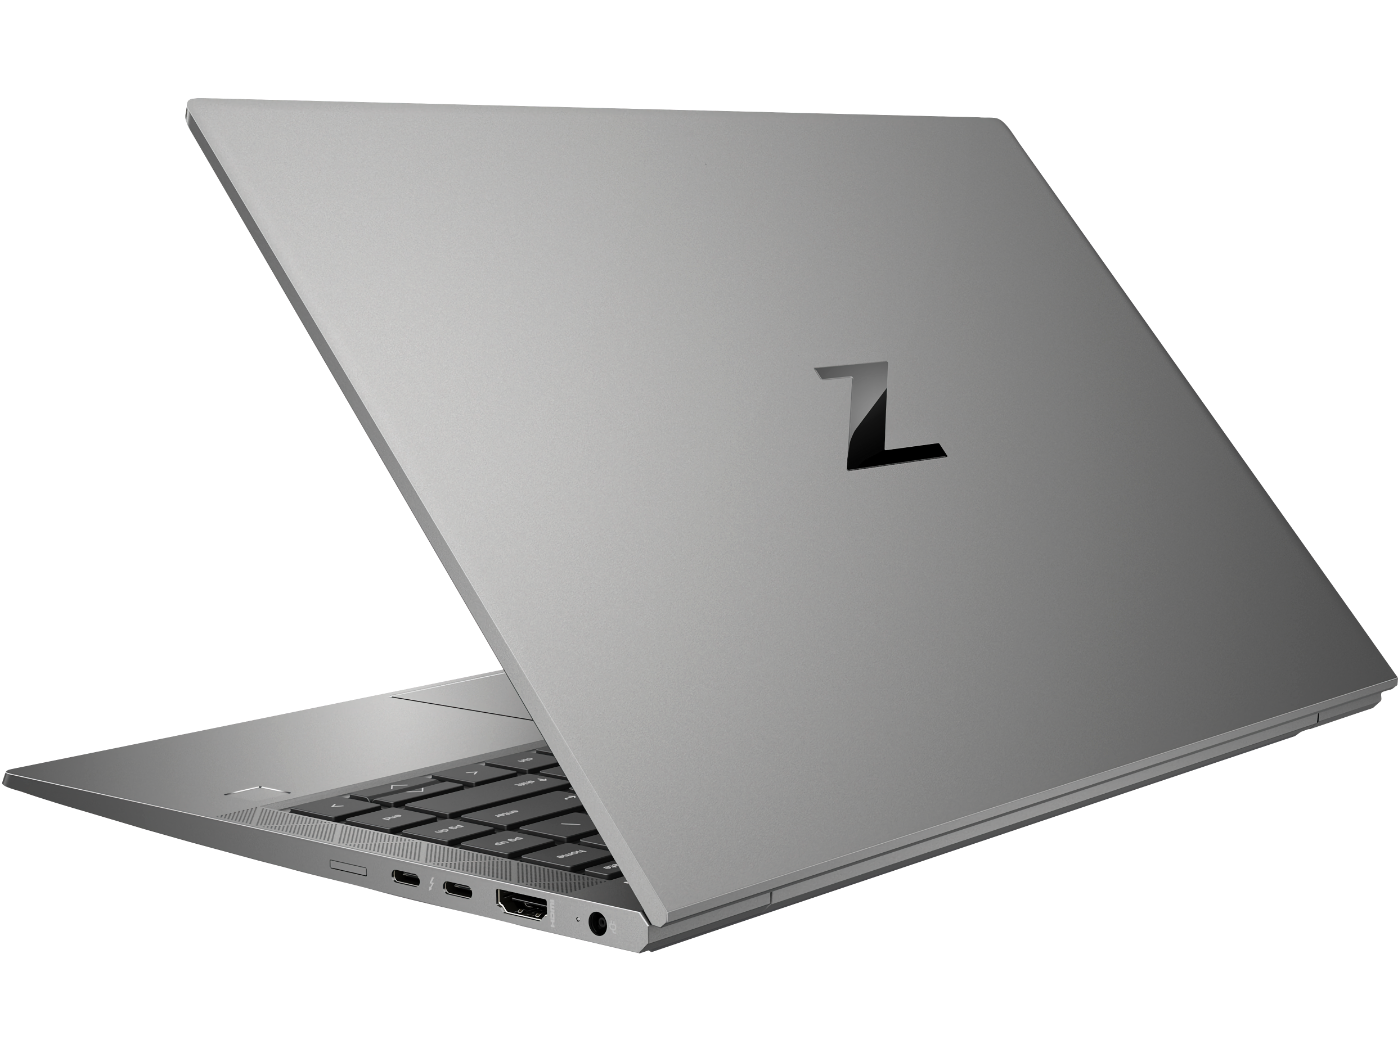 HP ZBook Firefly laptop rear-facing